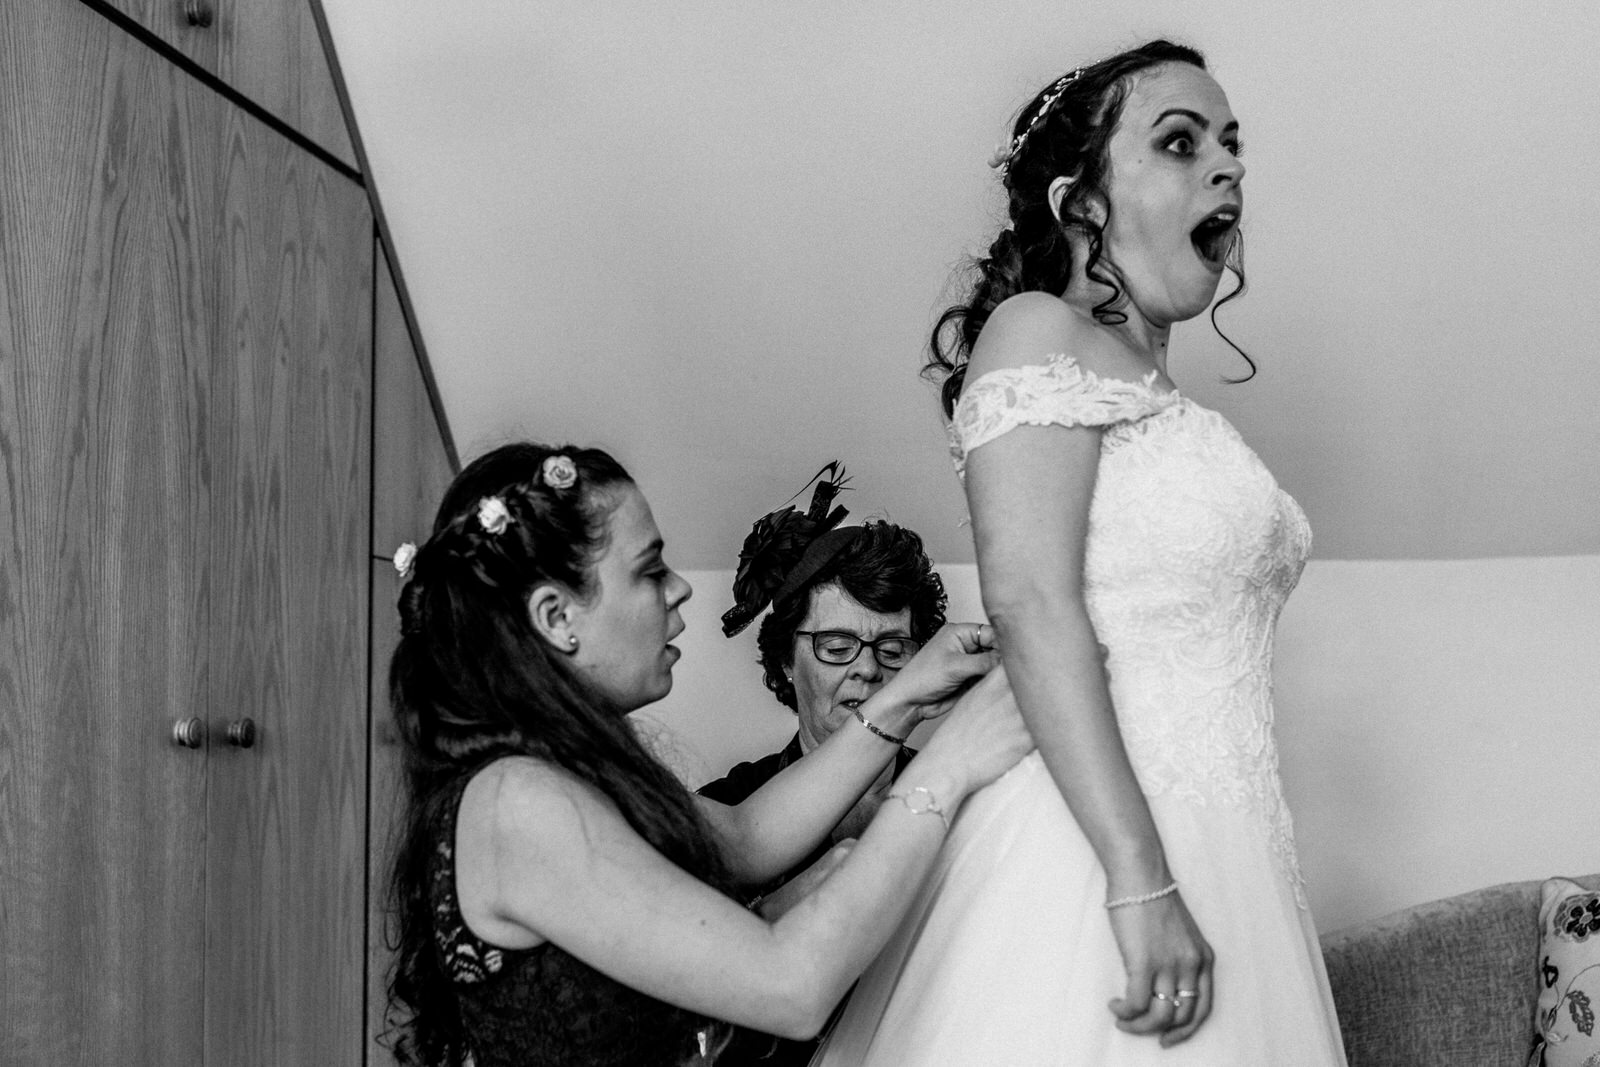 bride getting into dress with shocked face